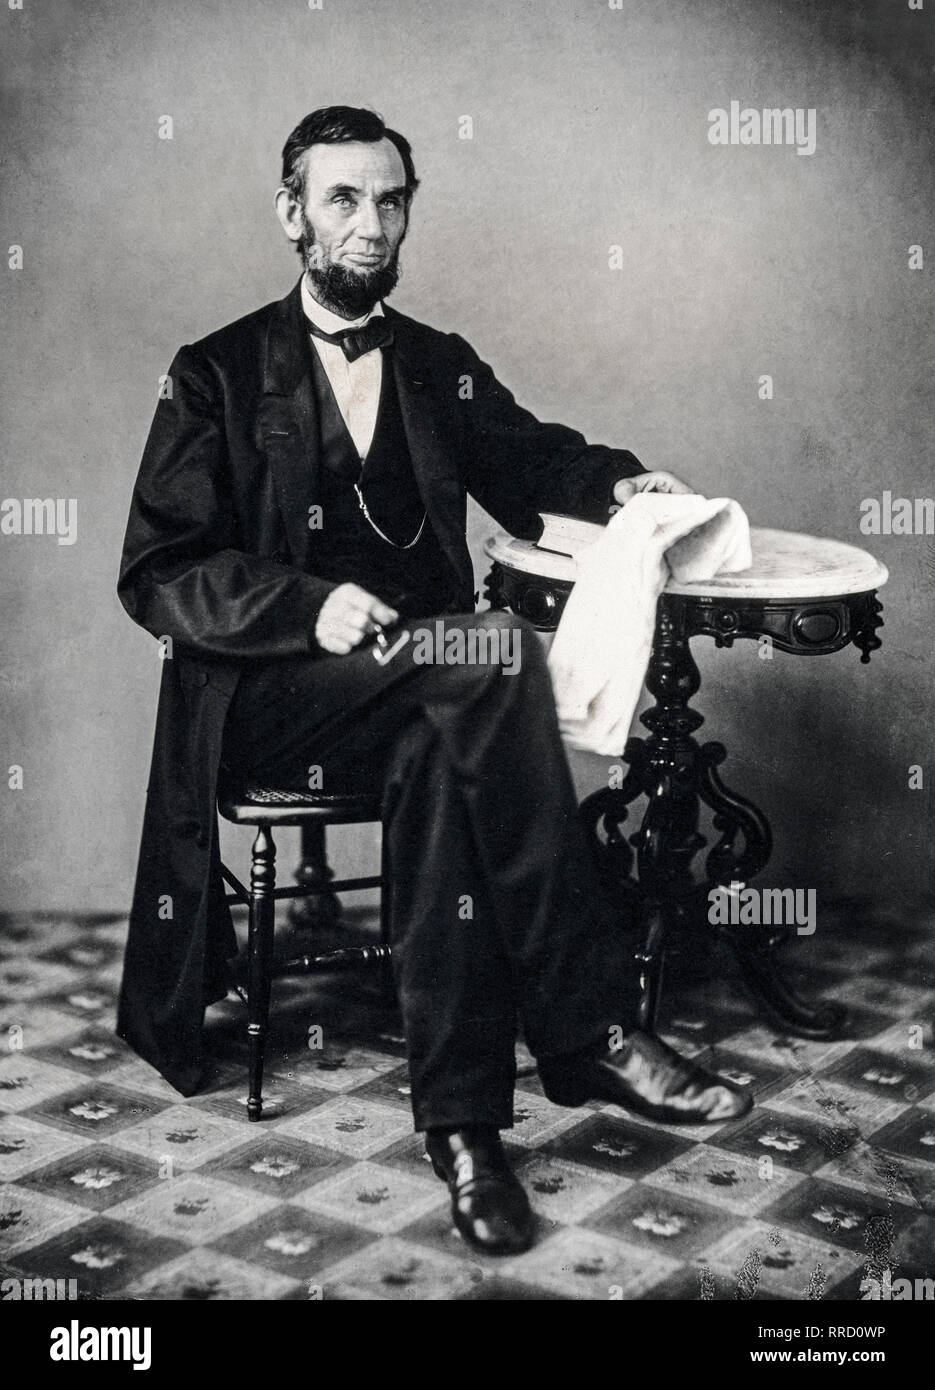 Abraham Lincoln, portrait photograph, Alexander Gardner, 1863 Stock Photo